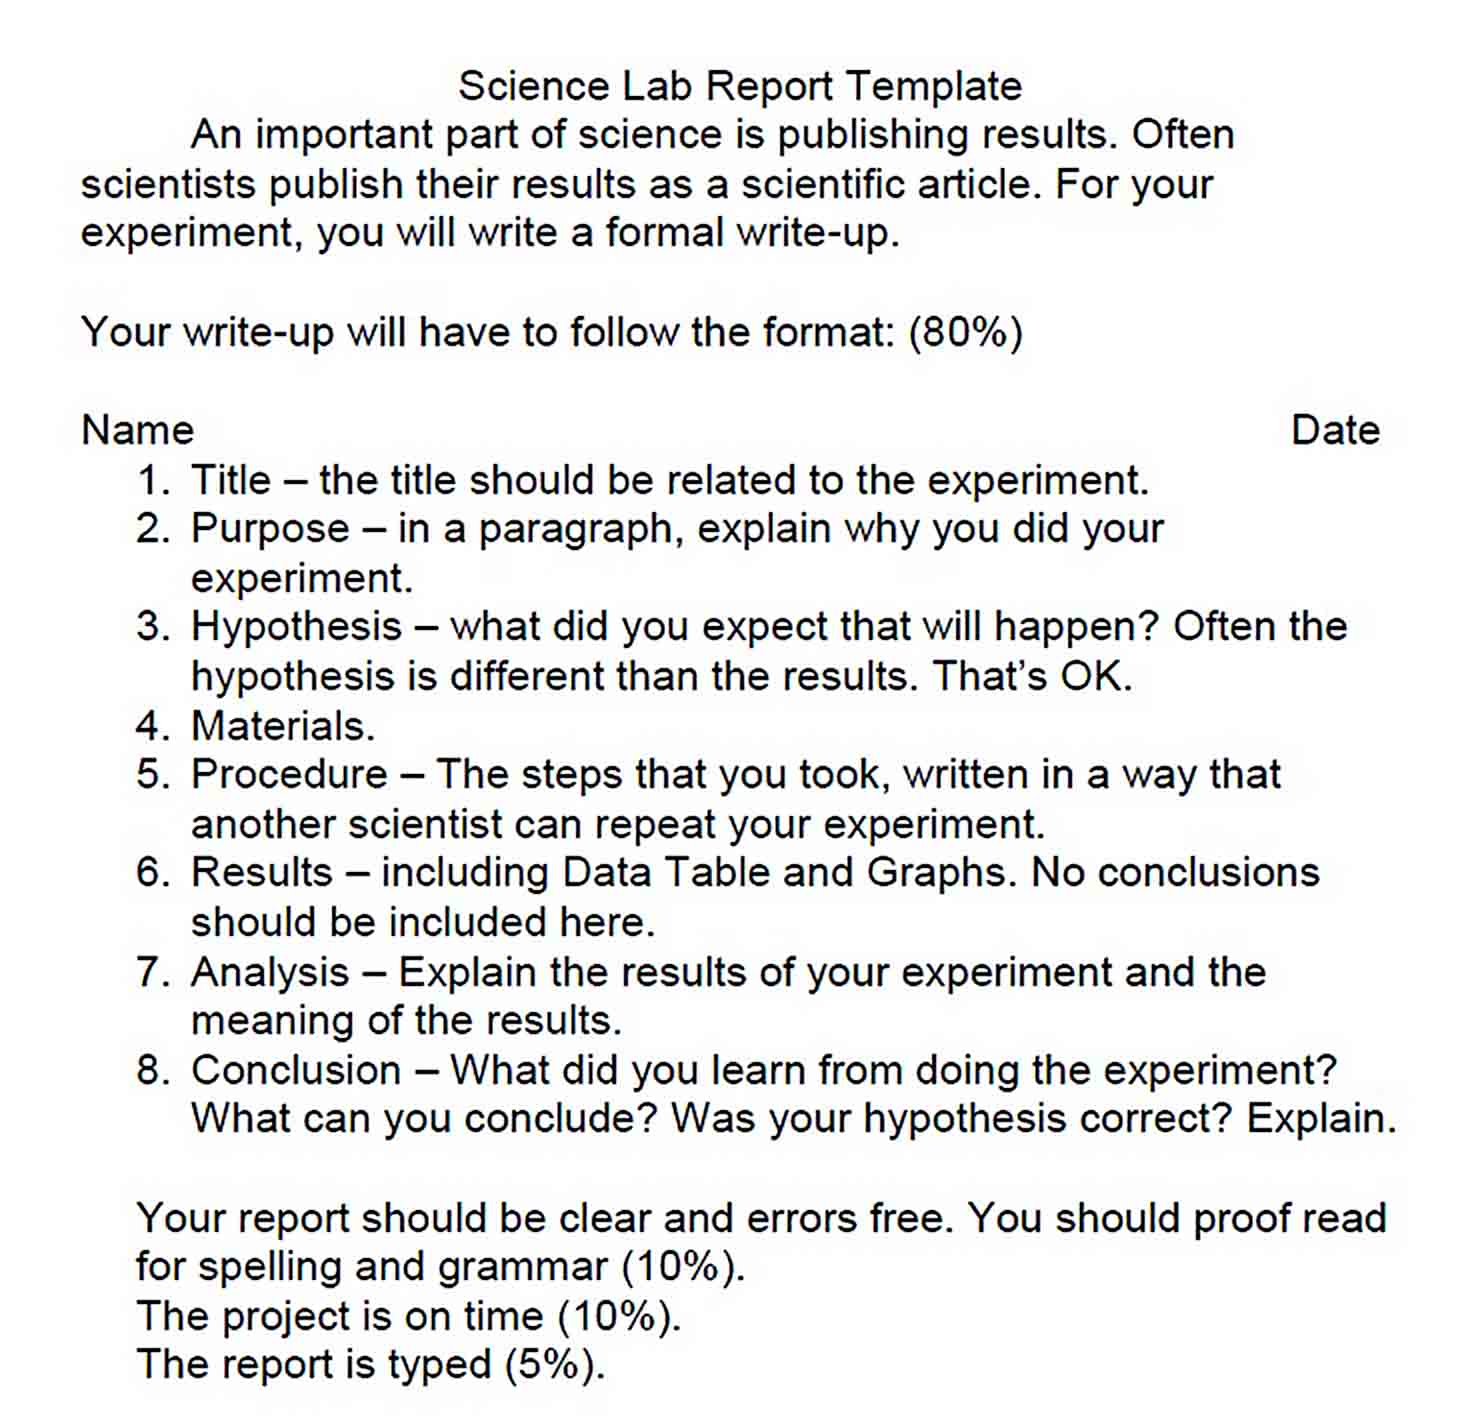 Templates Formal Science Lab Report 1 1